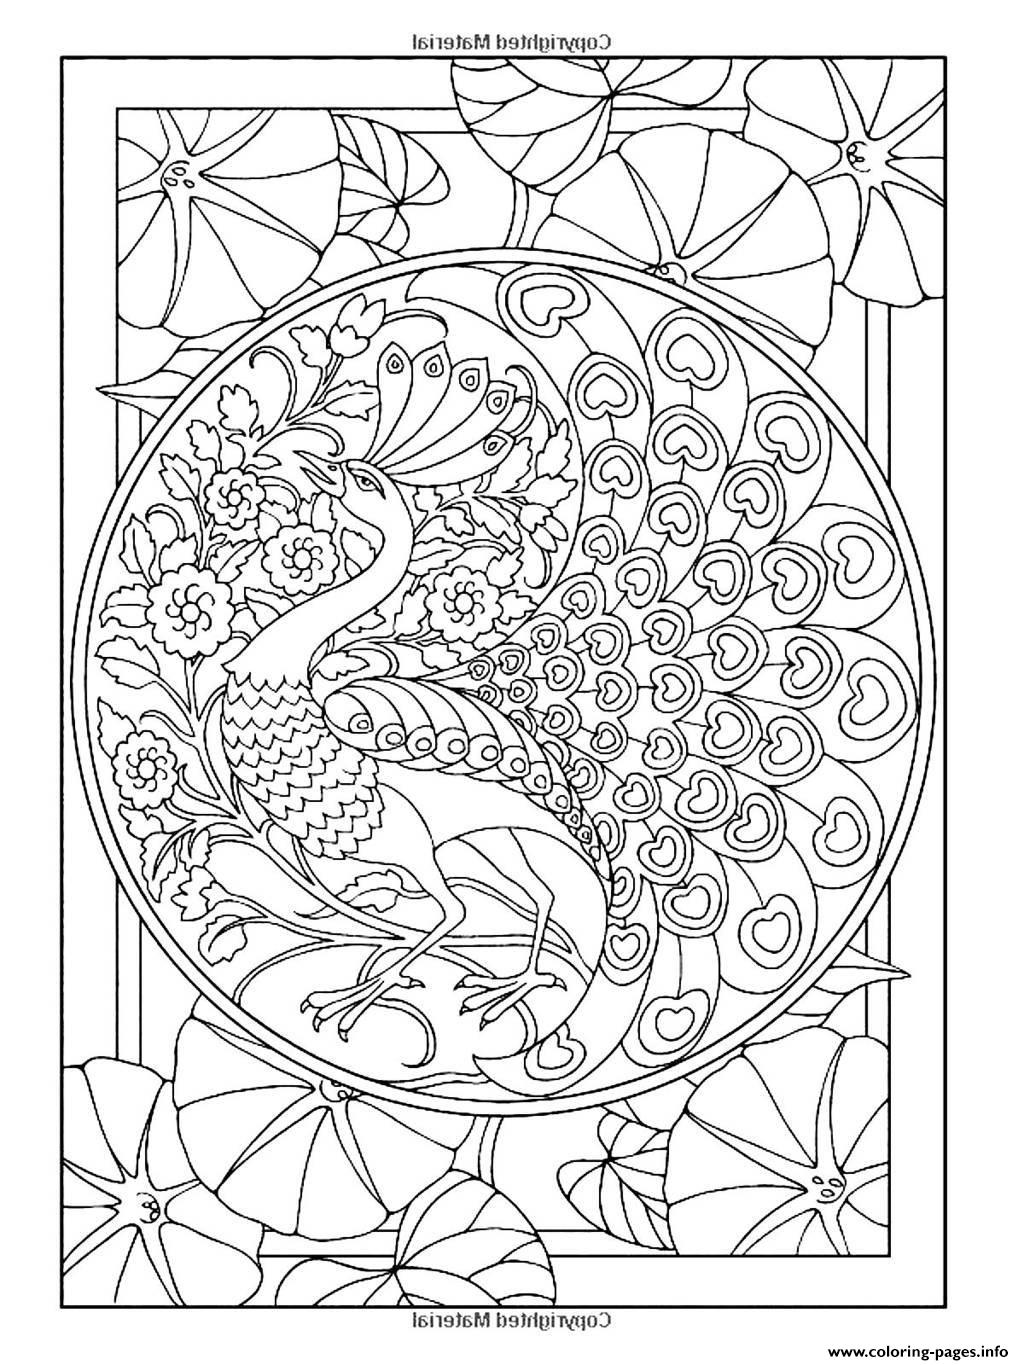 Peacock Coloring Pages For Adults - Coloring Home